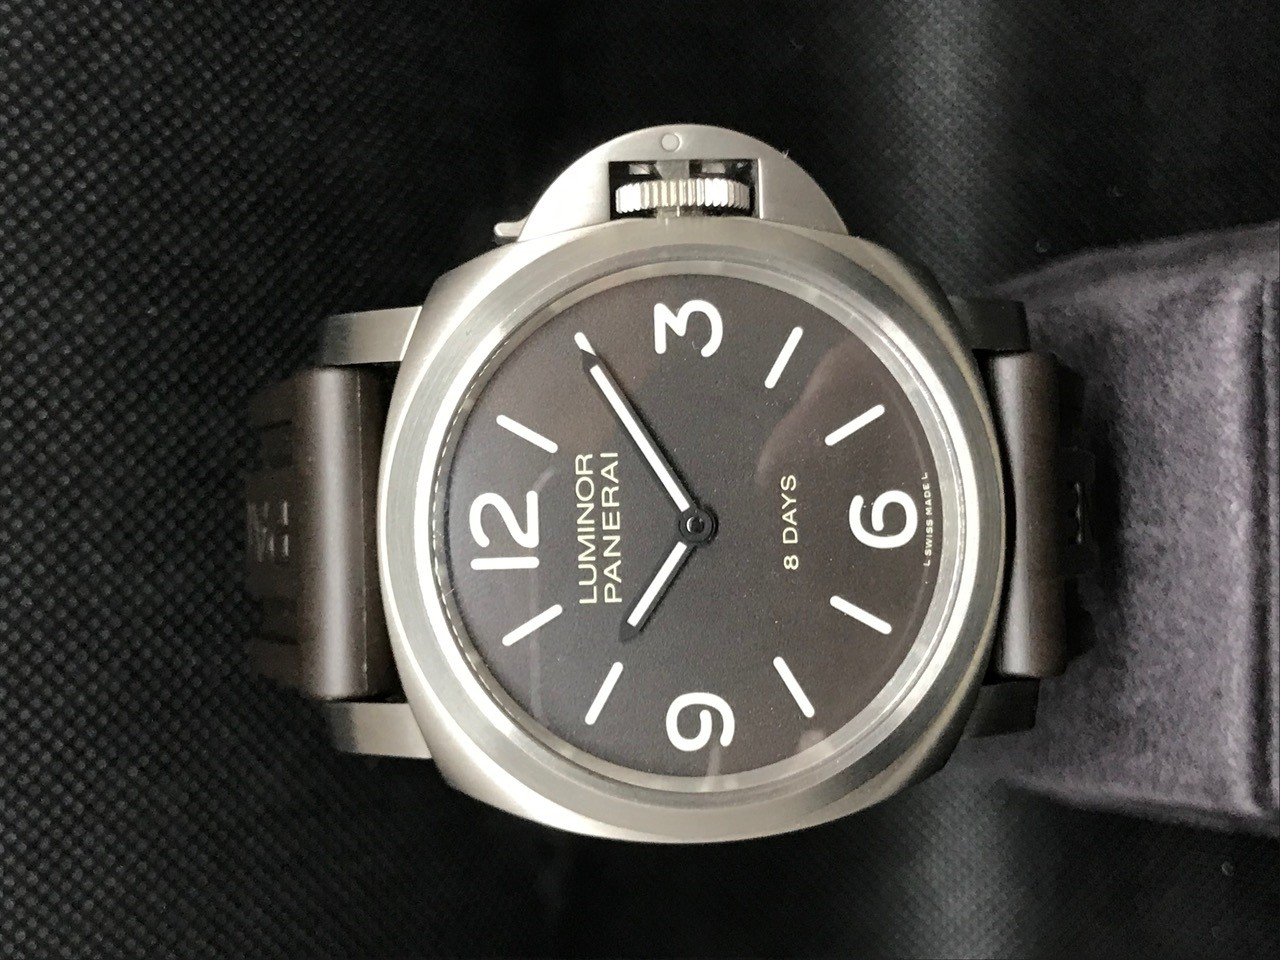 Panerai Luminor | La Spezia